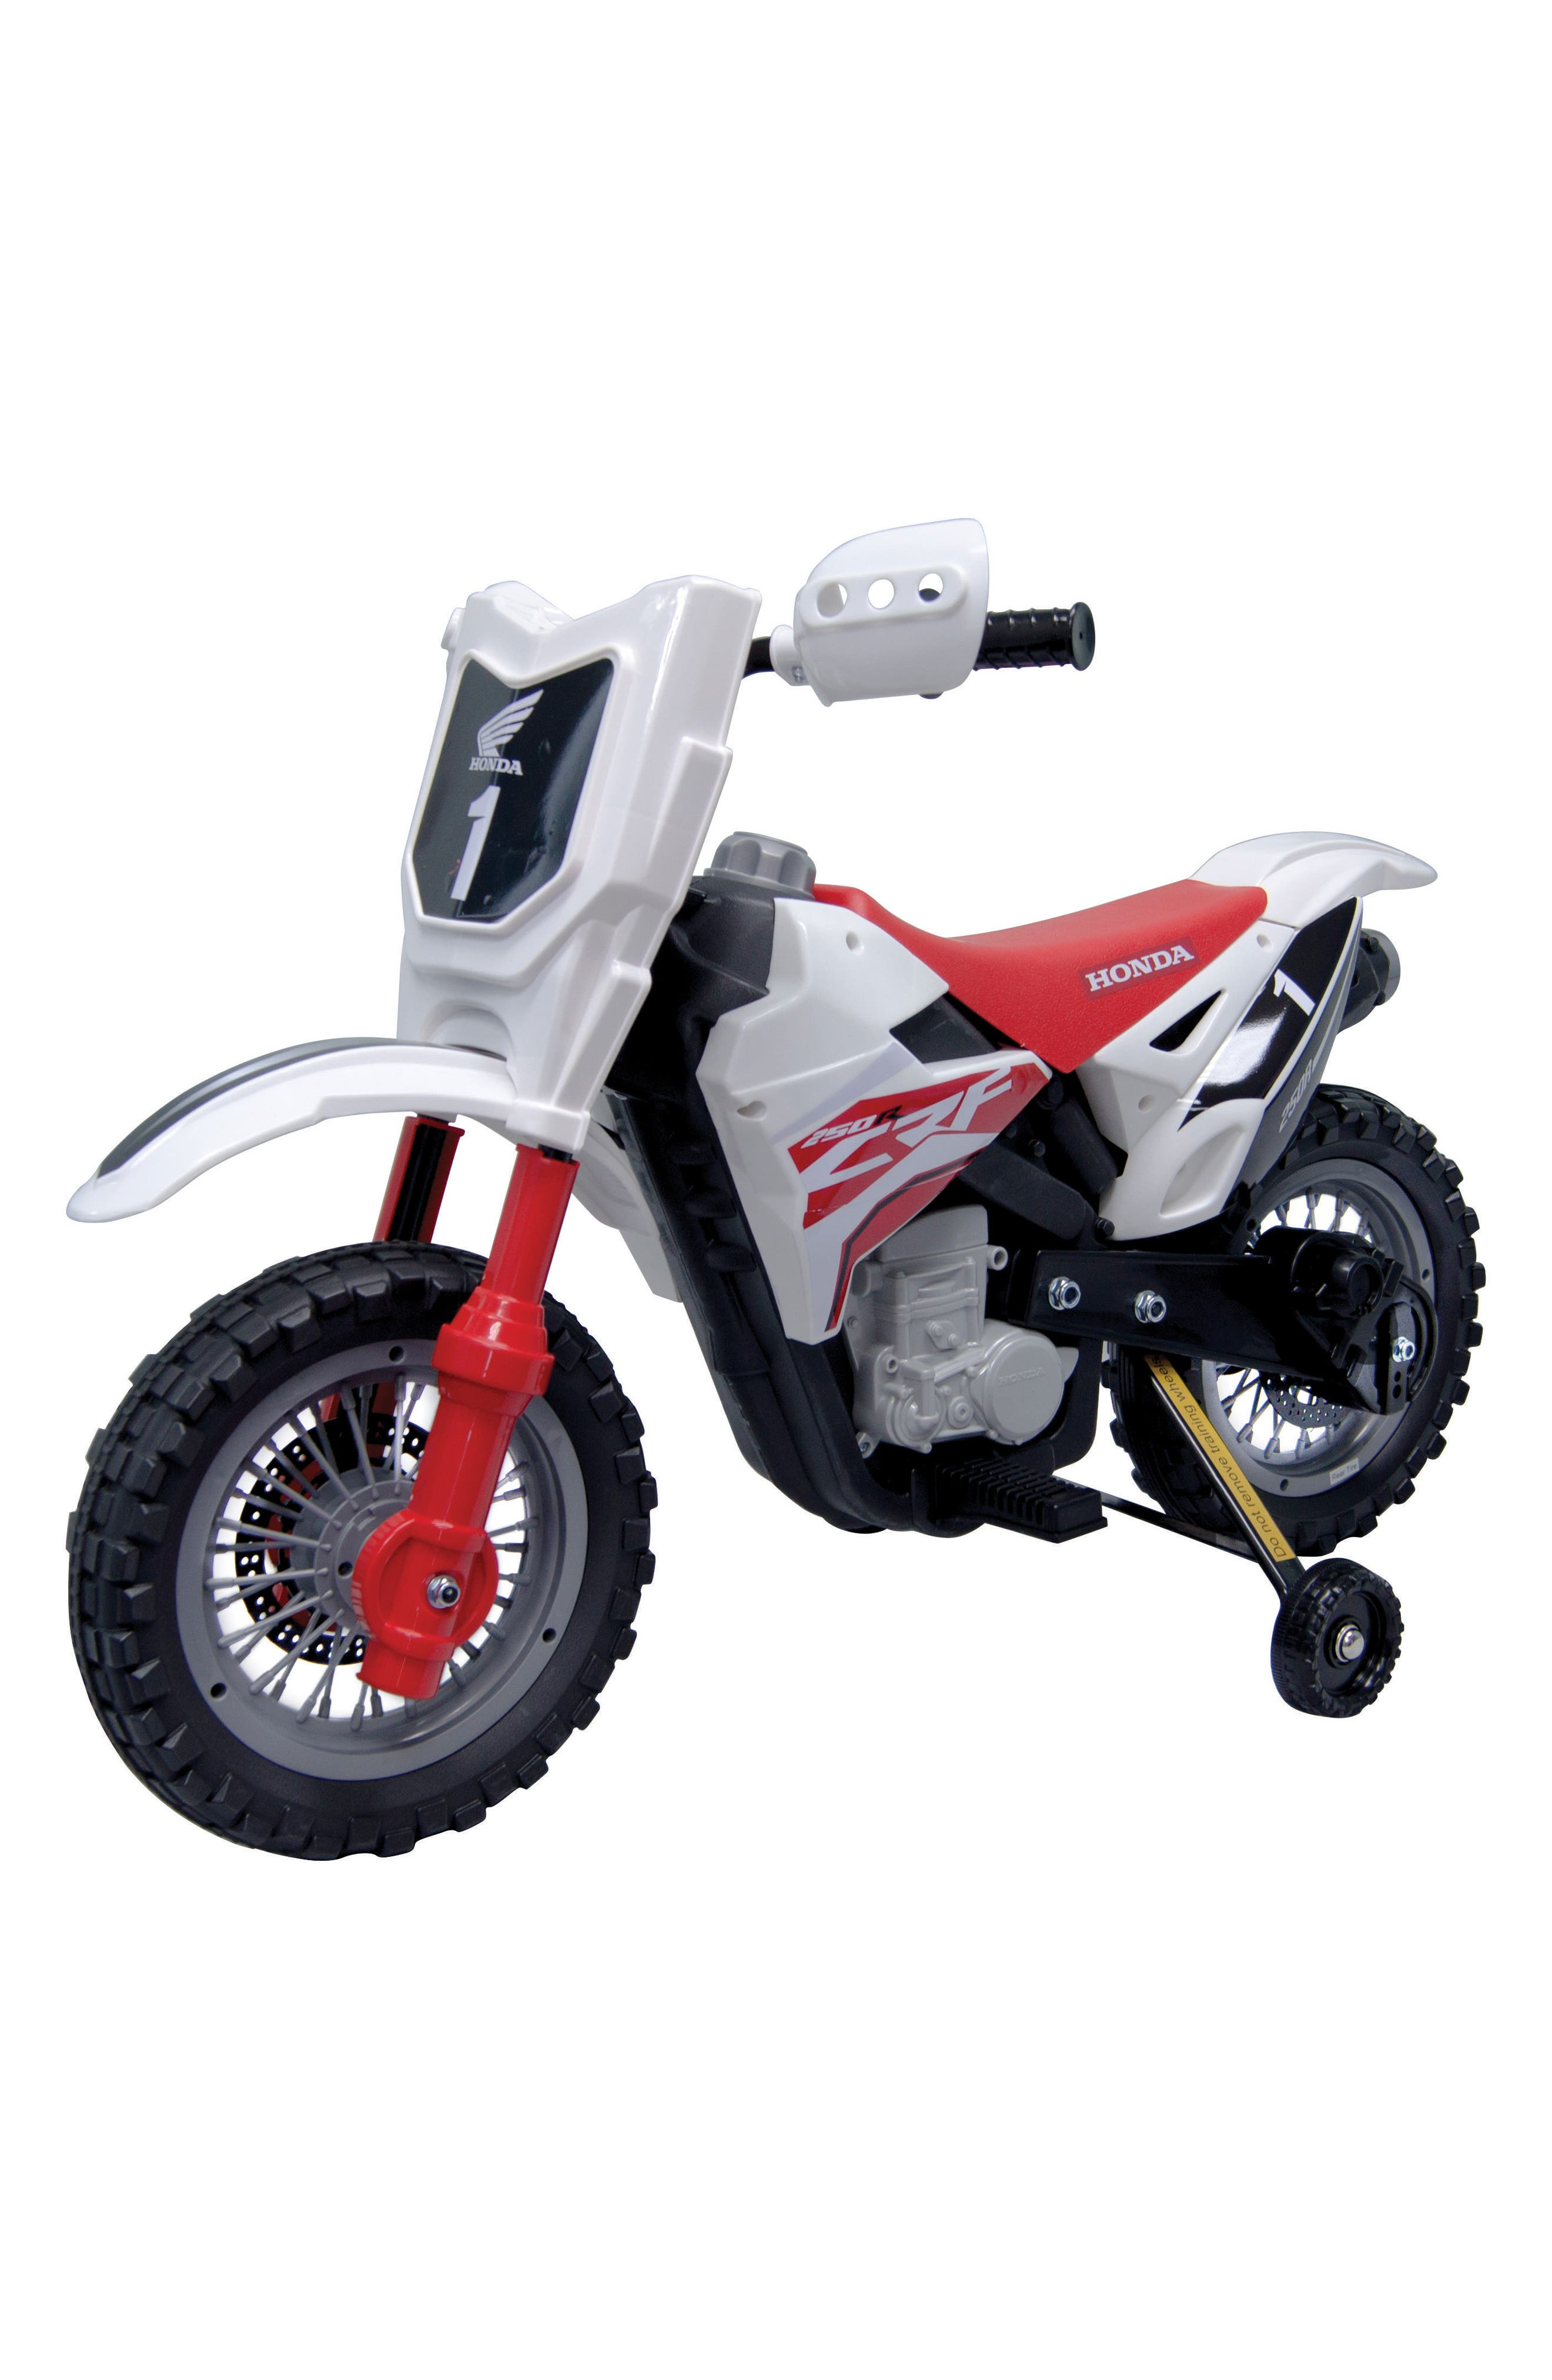 Honda Dirt Bike Ride-On Toy Motorcycle,                         Main,                         color, White